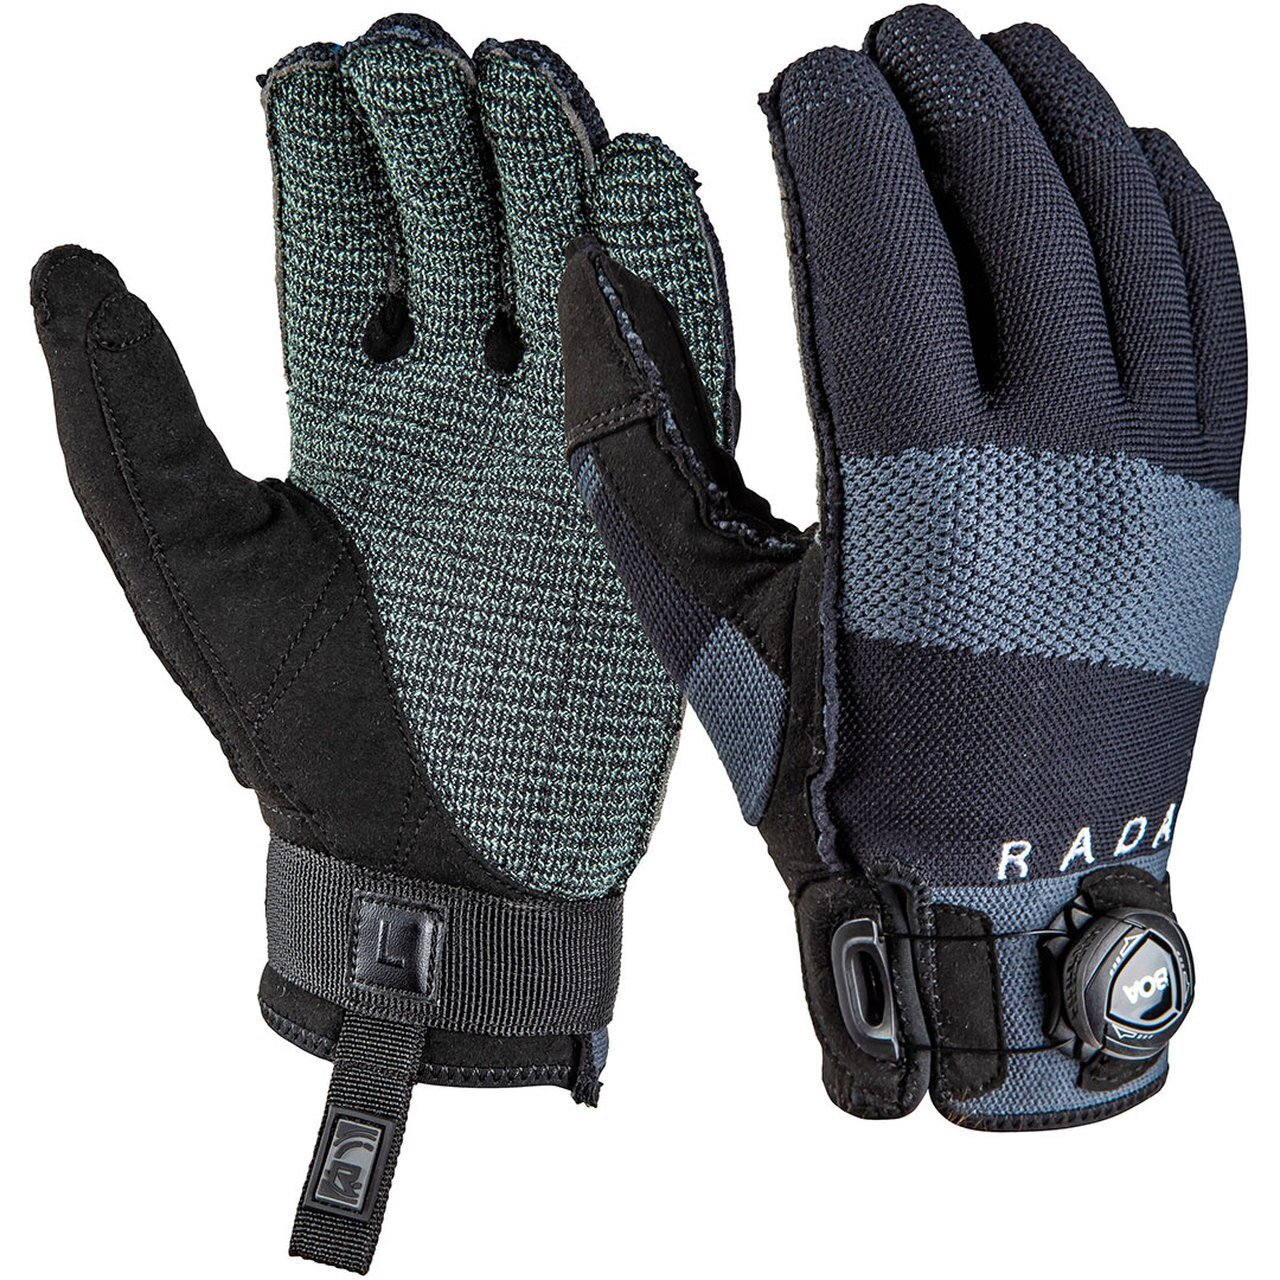 Radar Engineer BOA Inside/Outside Glove